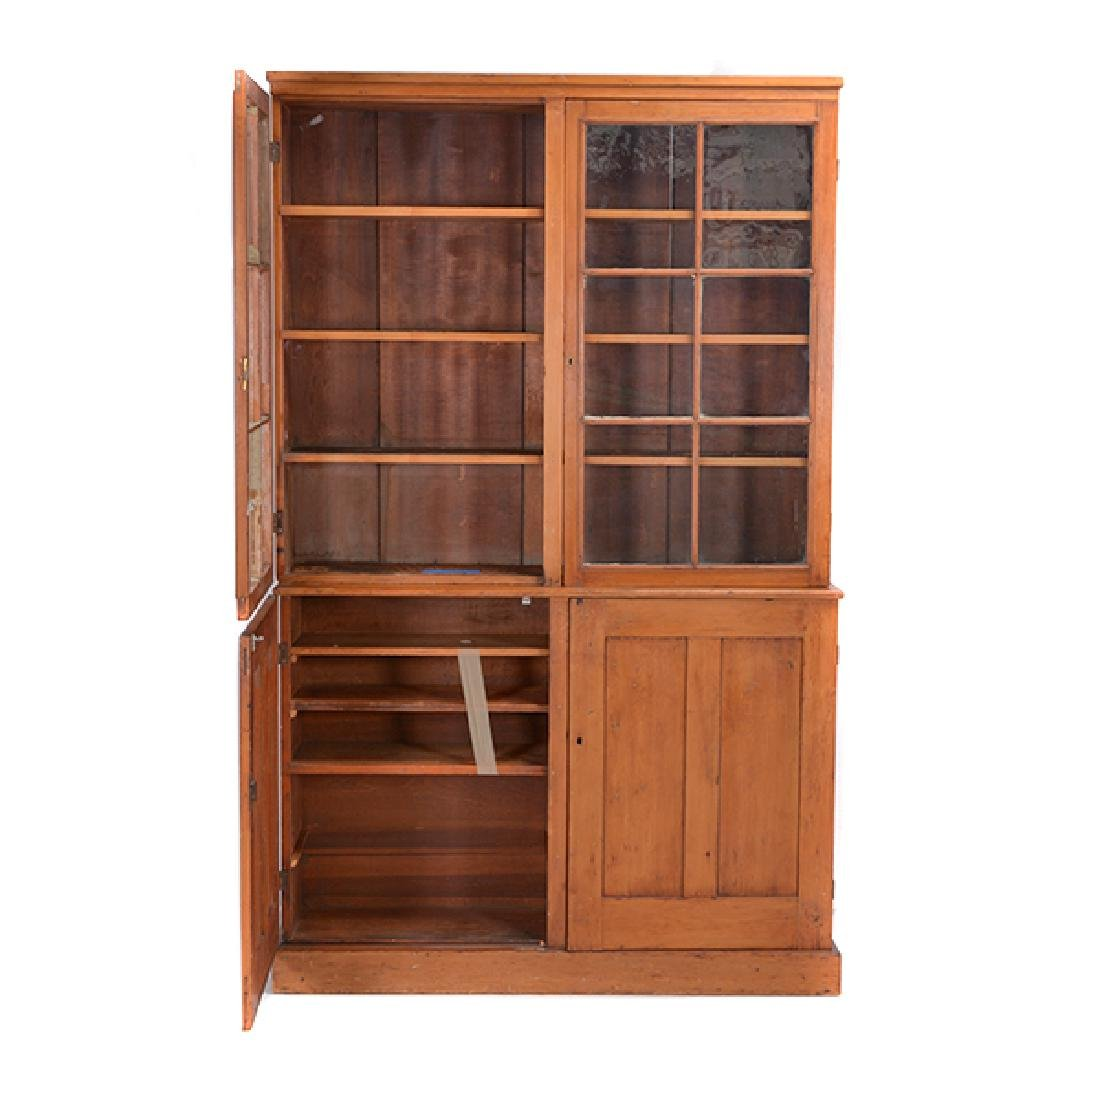 American Federal Maple, Pine, and Walnut Cabinet - 2